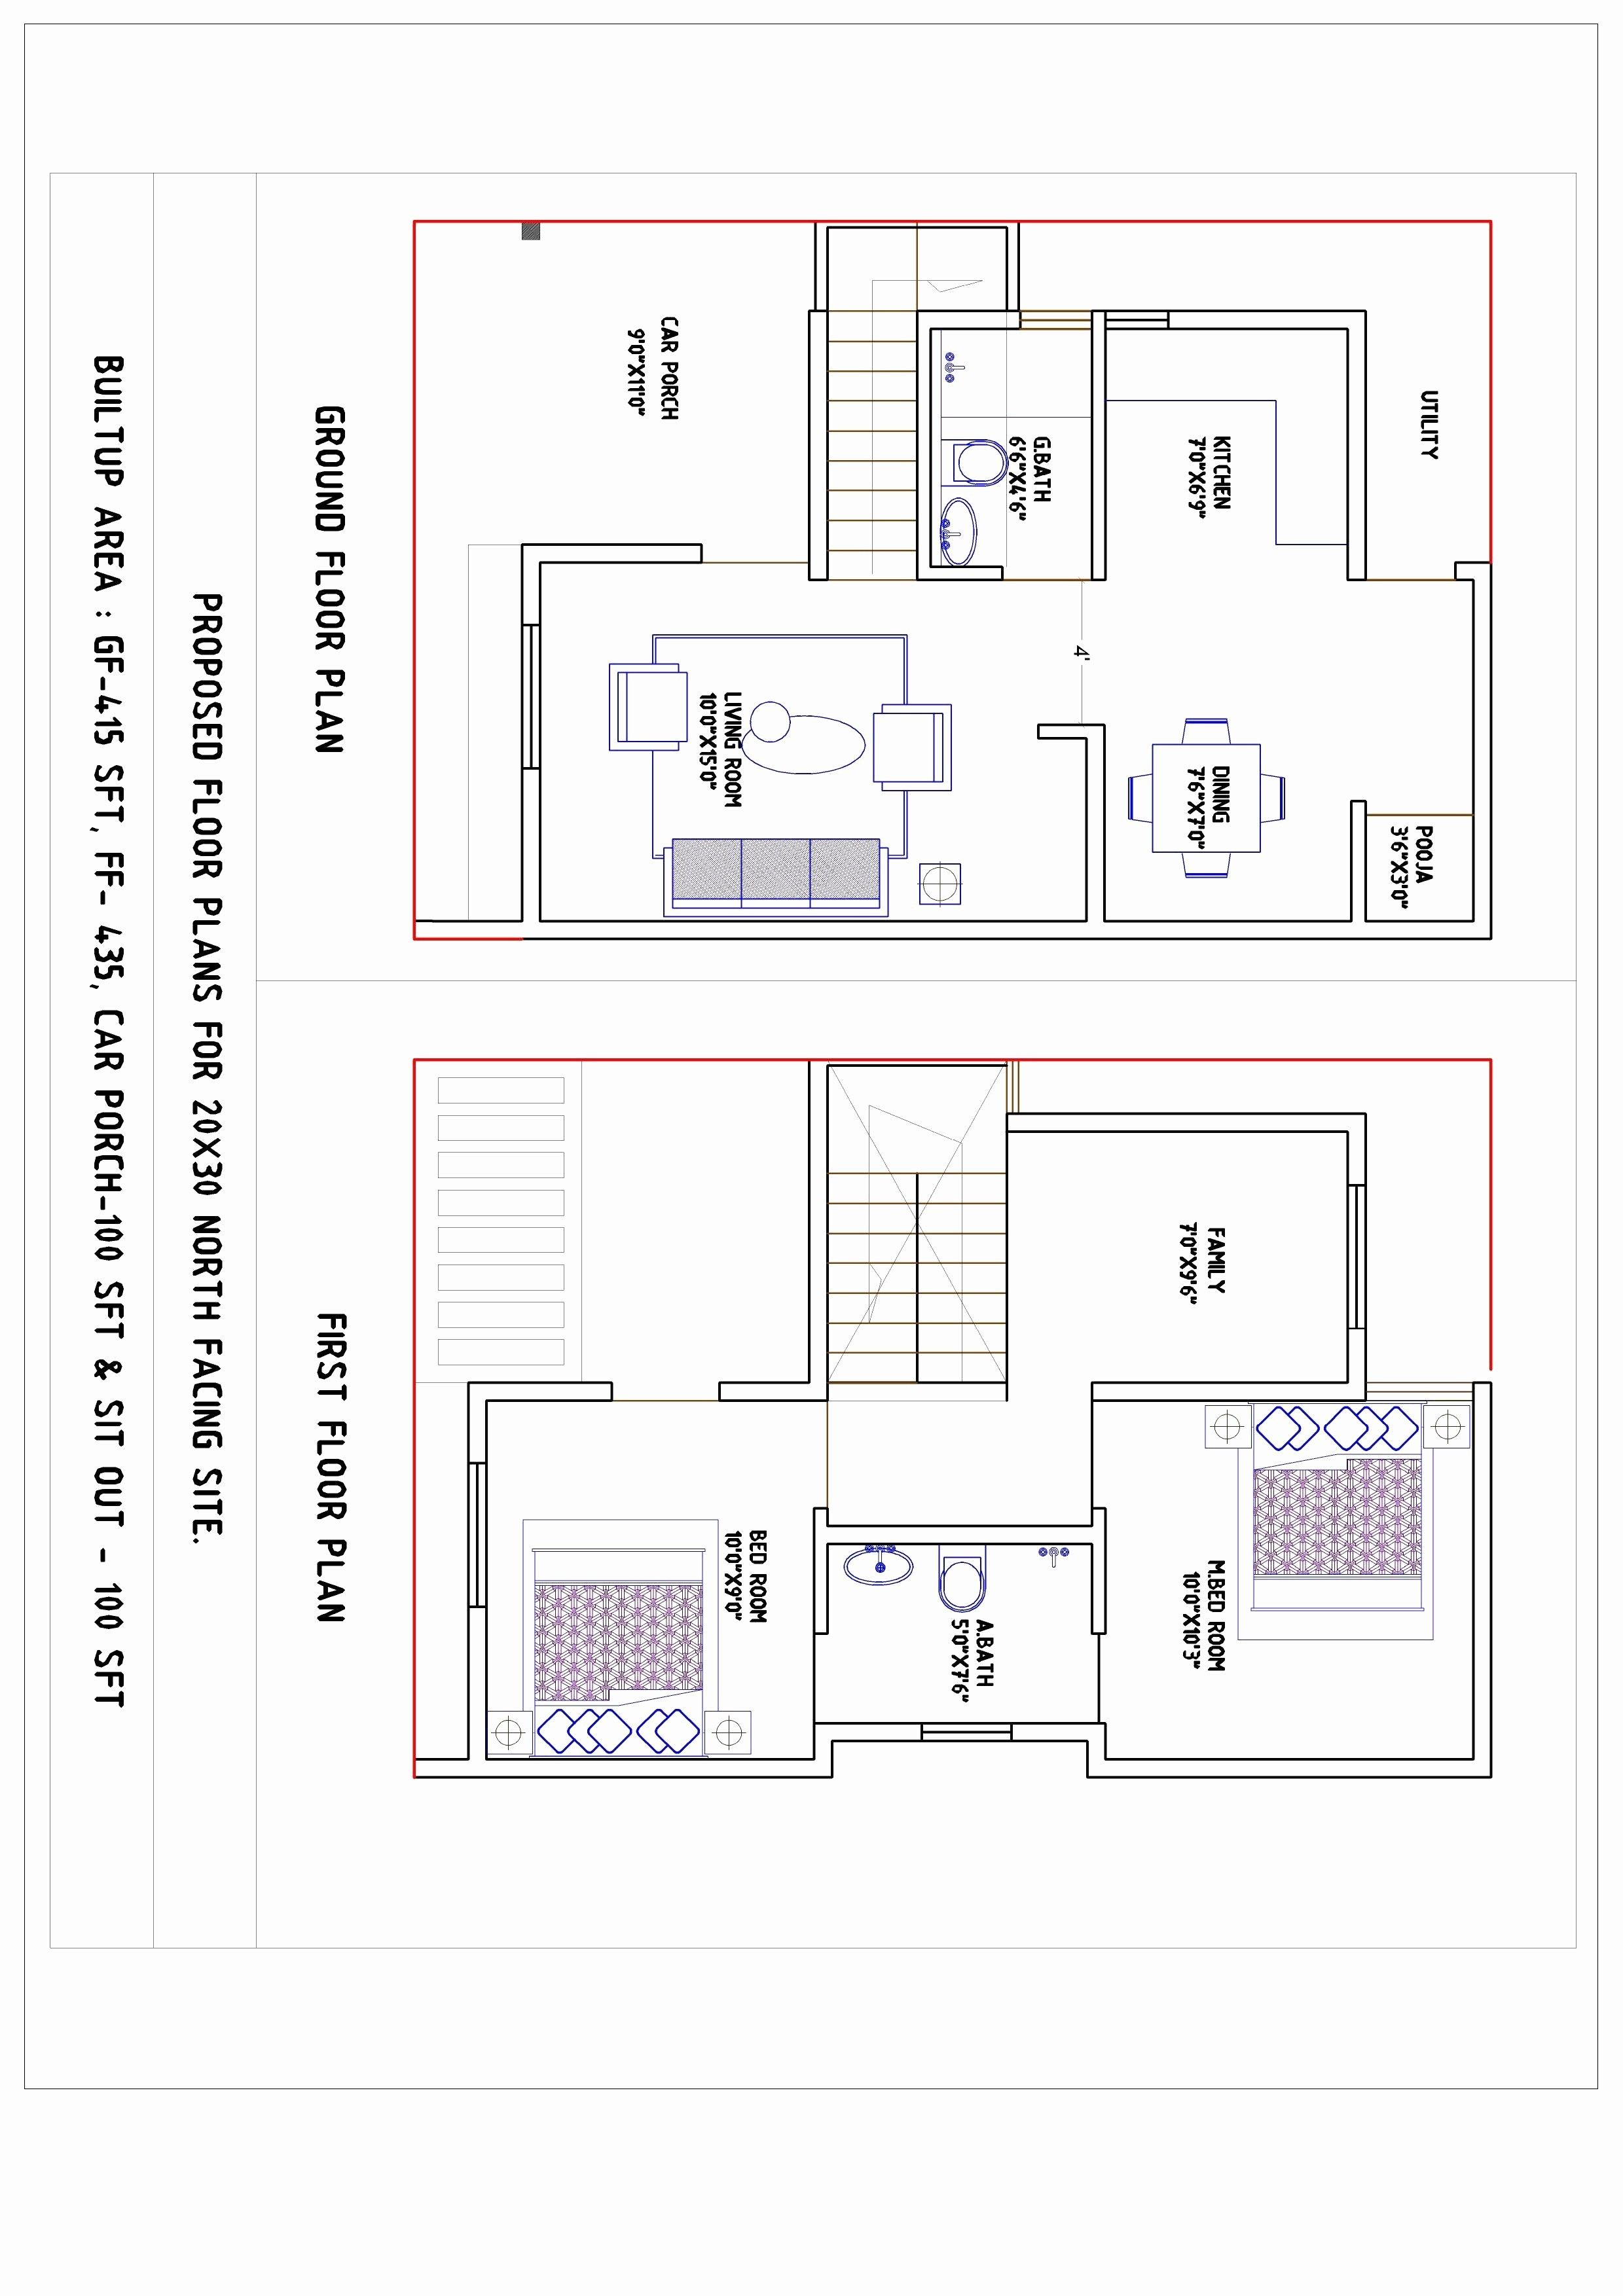 50 Best Of 30 X 40 House Plans Gallery Fancy House Plan Gallery House Plans How To Plan